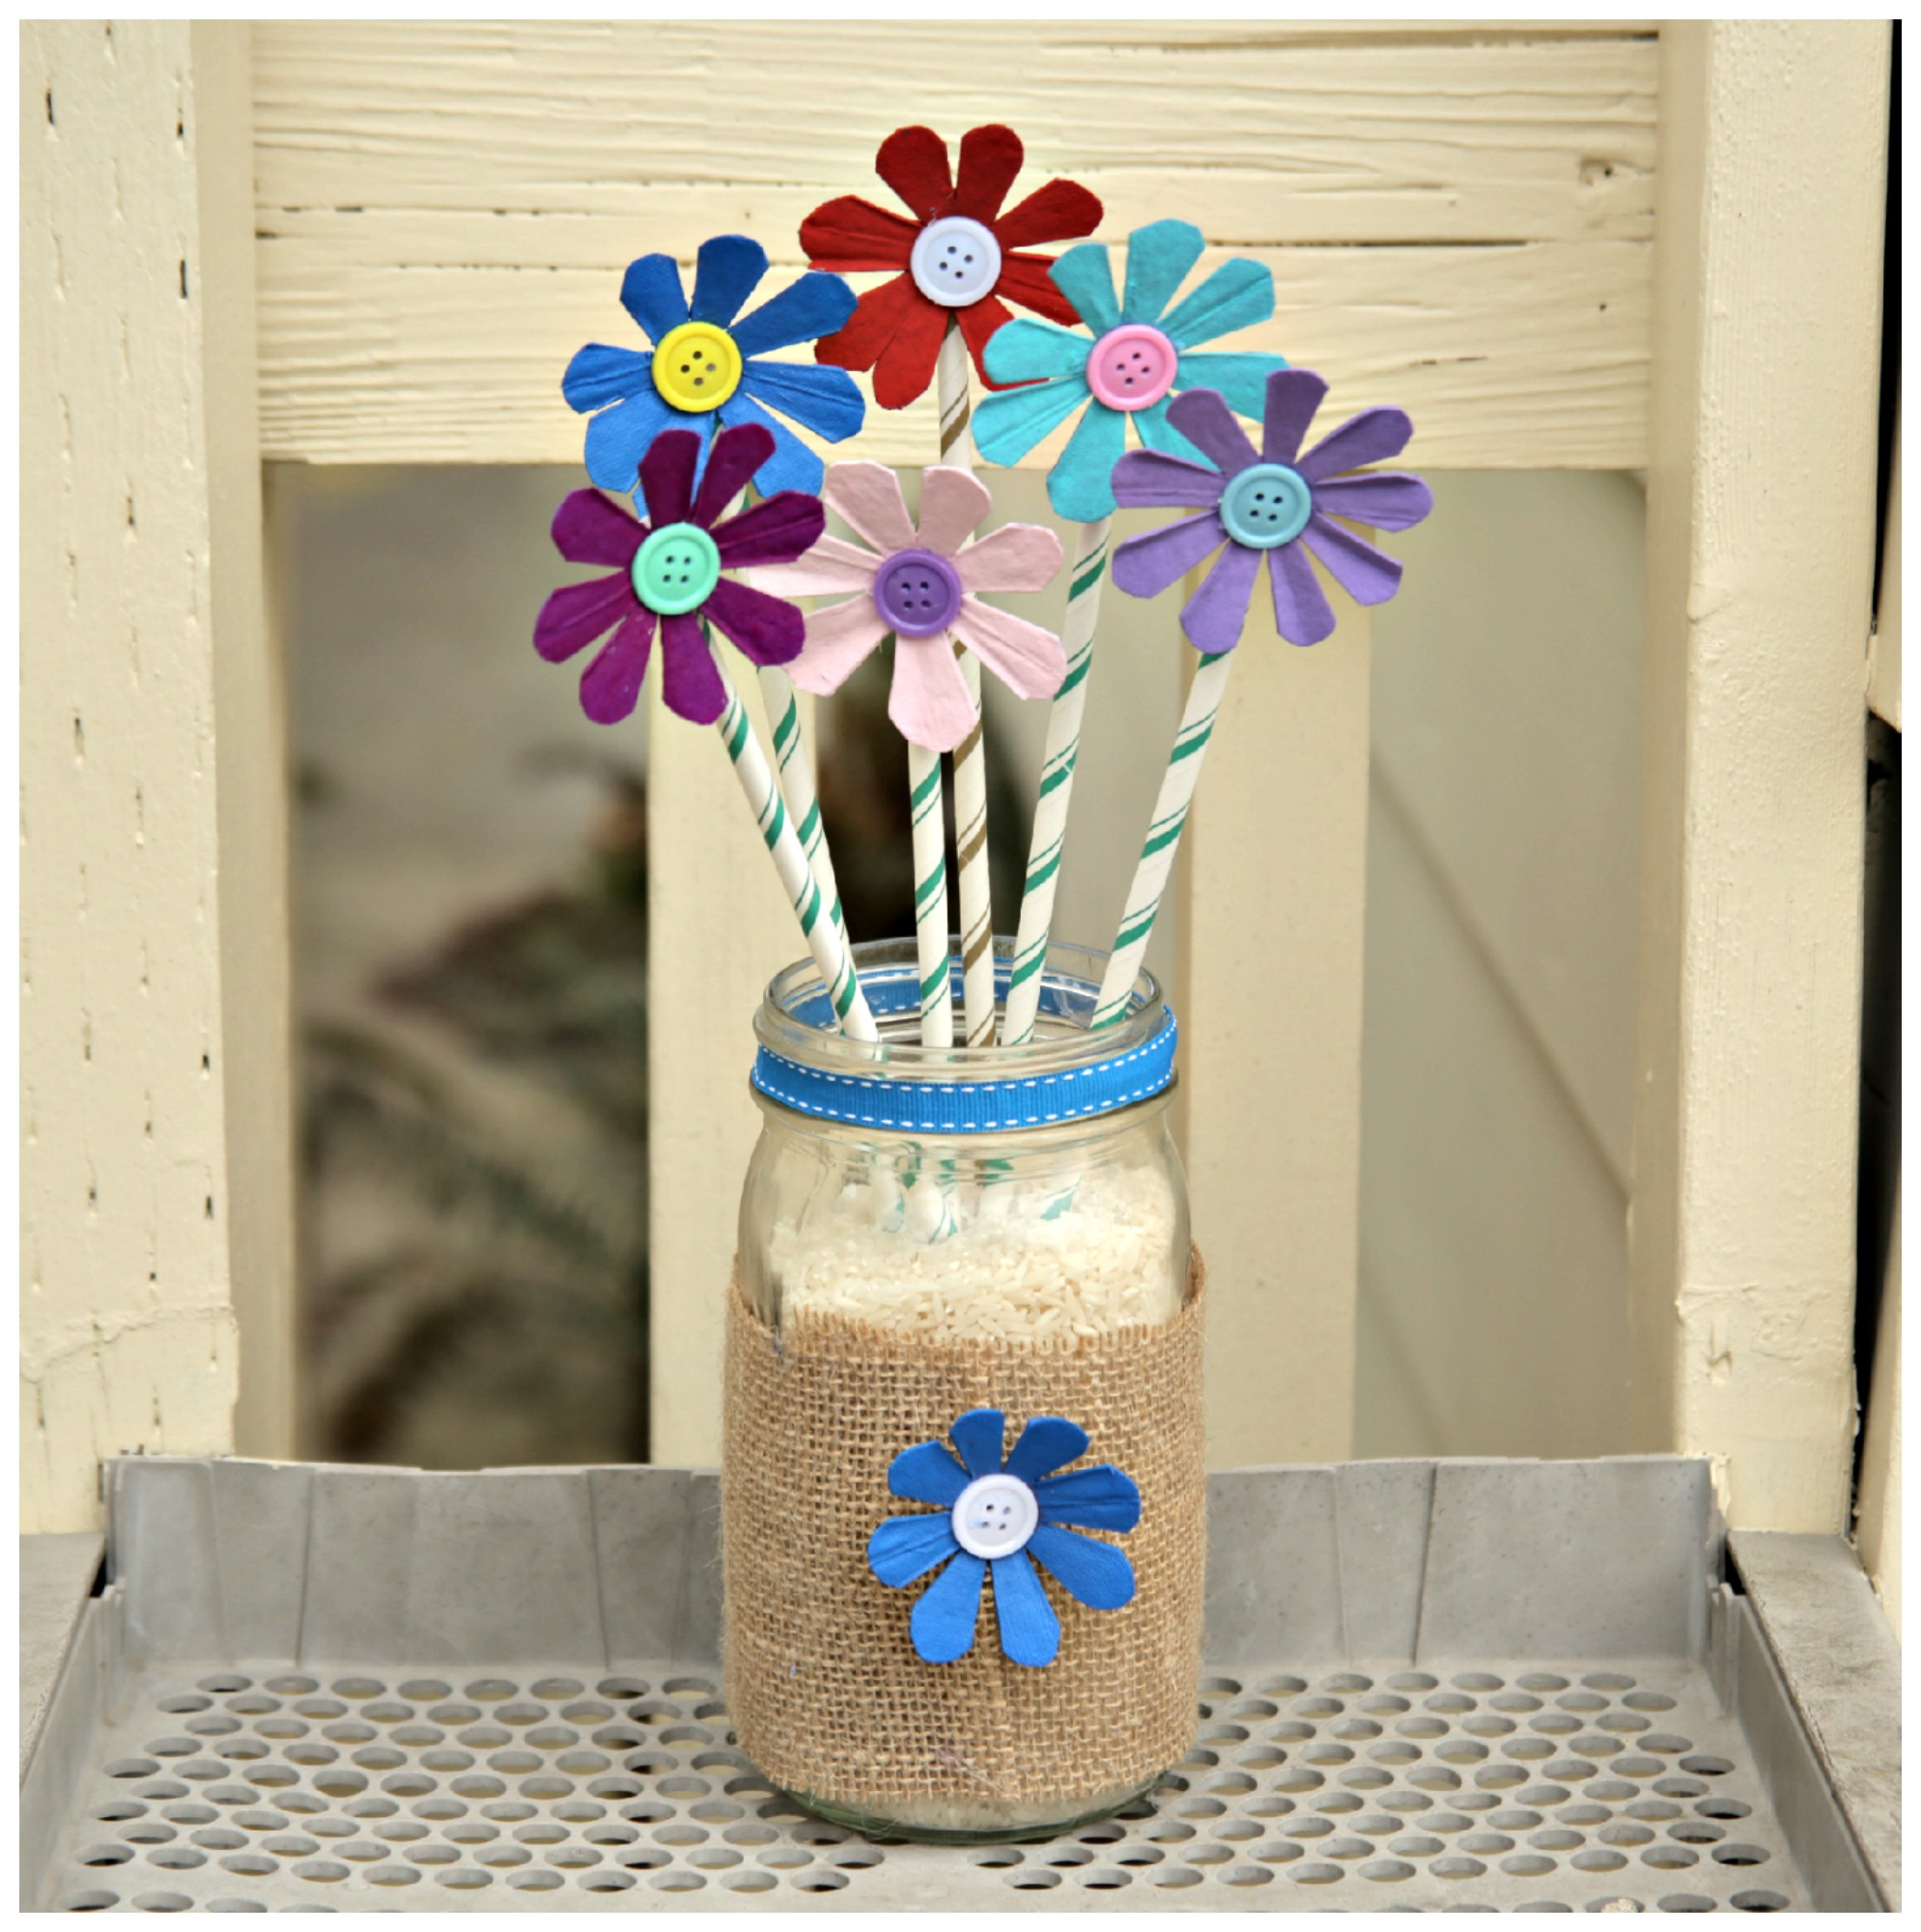 6 earth day crafts from recycled materials kix cereal for Waste product craft